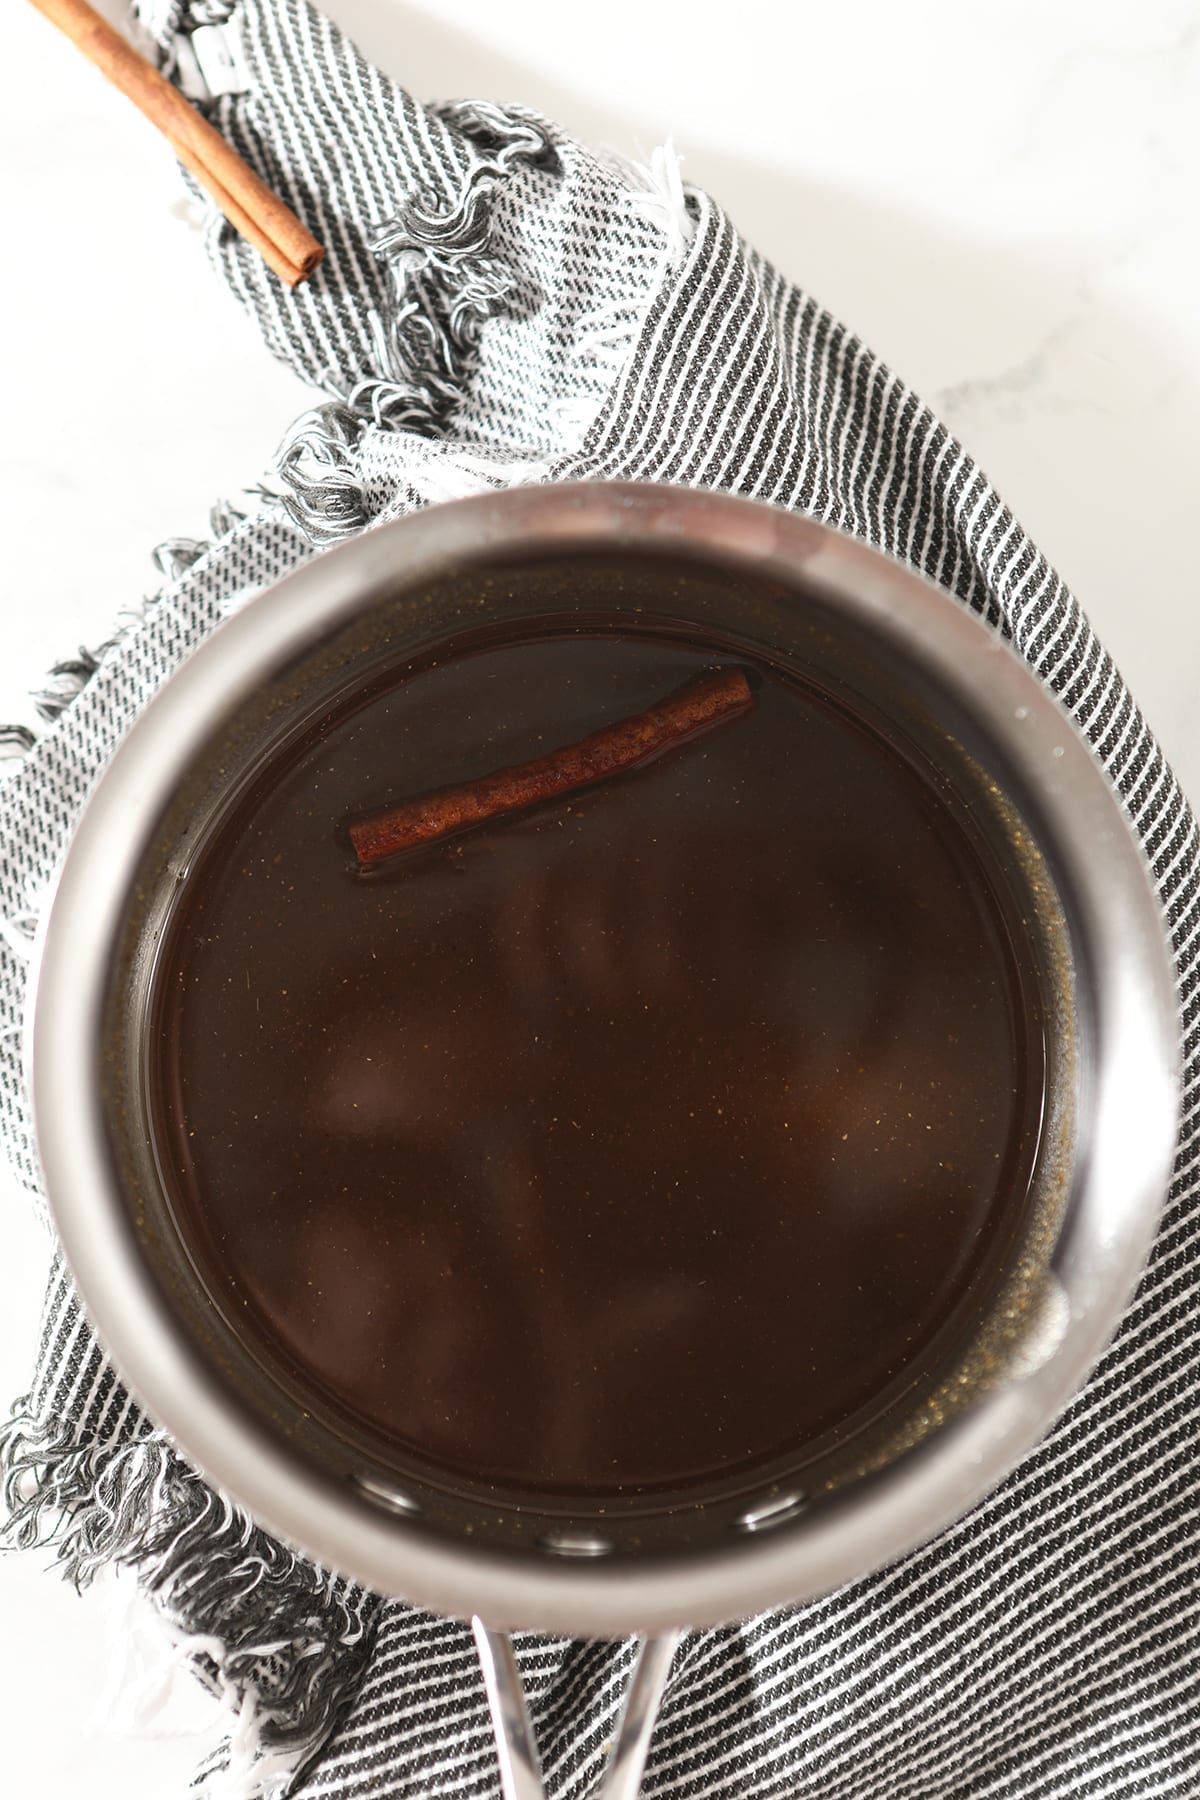 Pumpkin Spice Syrup steeps in a saucepan on marble